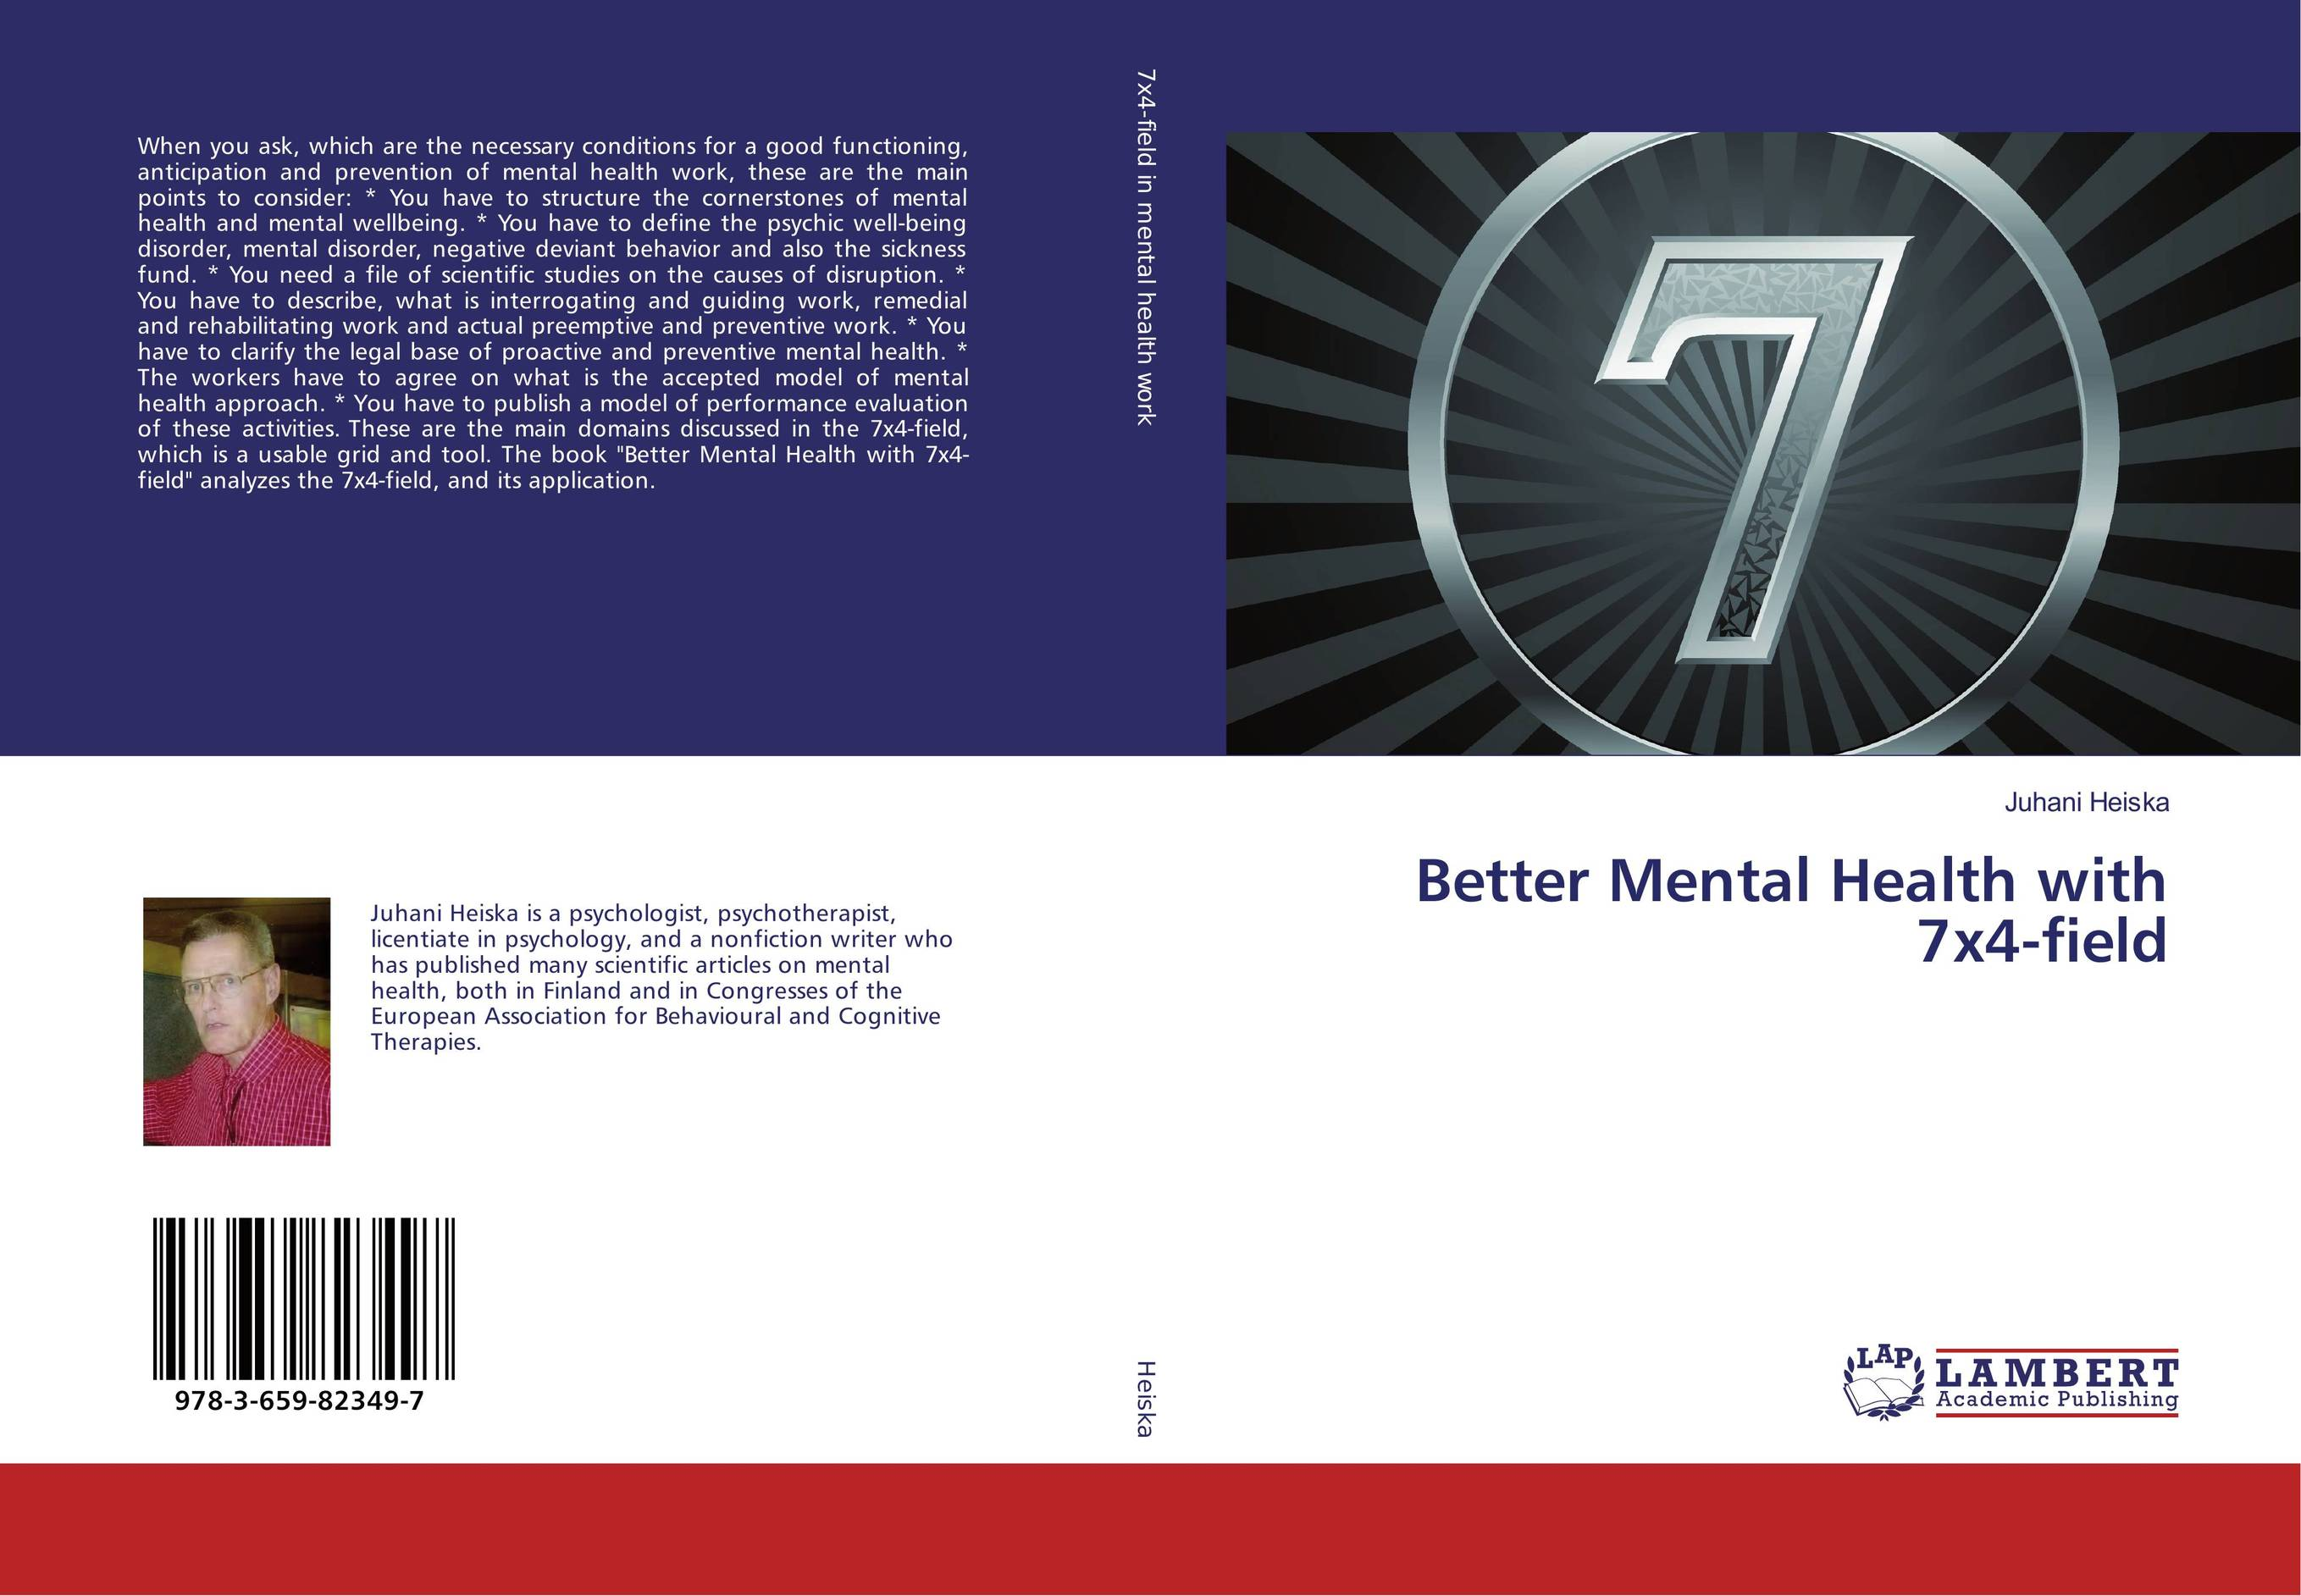 Better Mental Health with 7x4-field prostate health devices is prostate removal prostatitis mainly for the prostate health and prostatitis health capsule